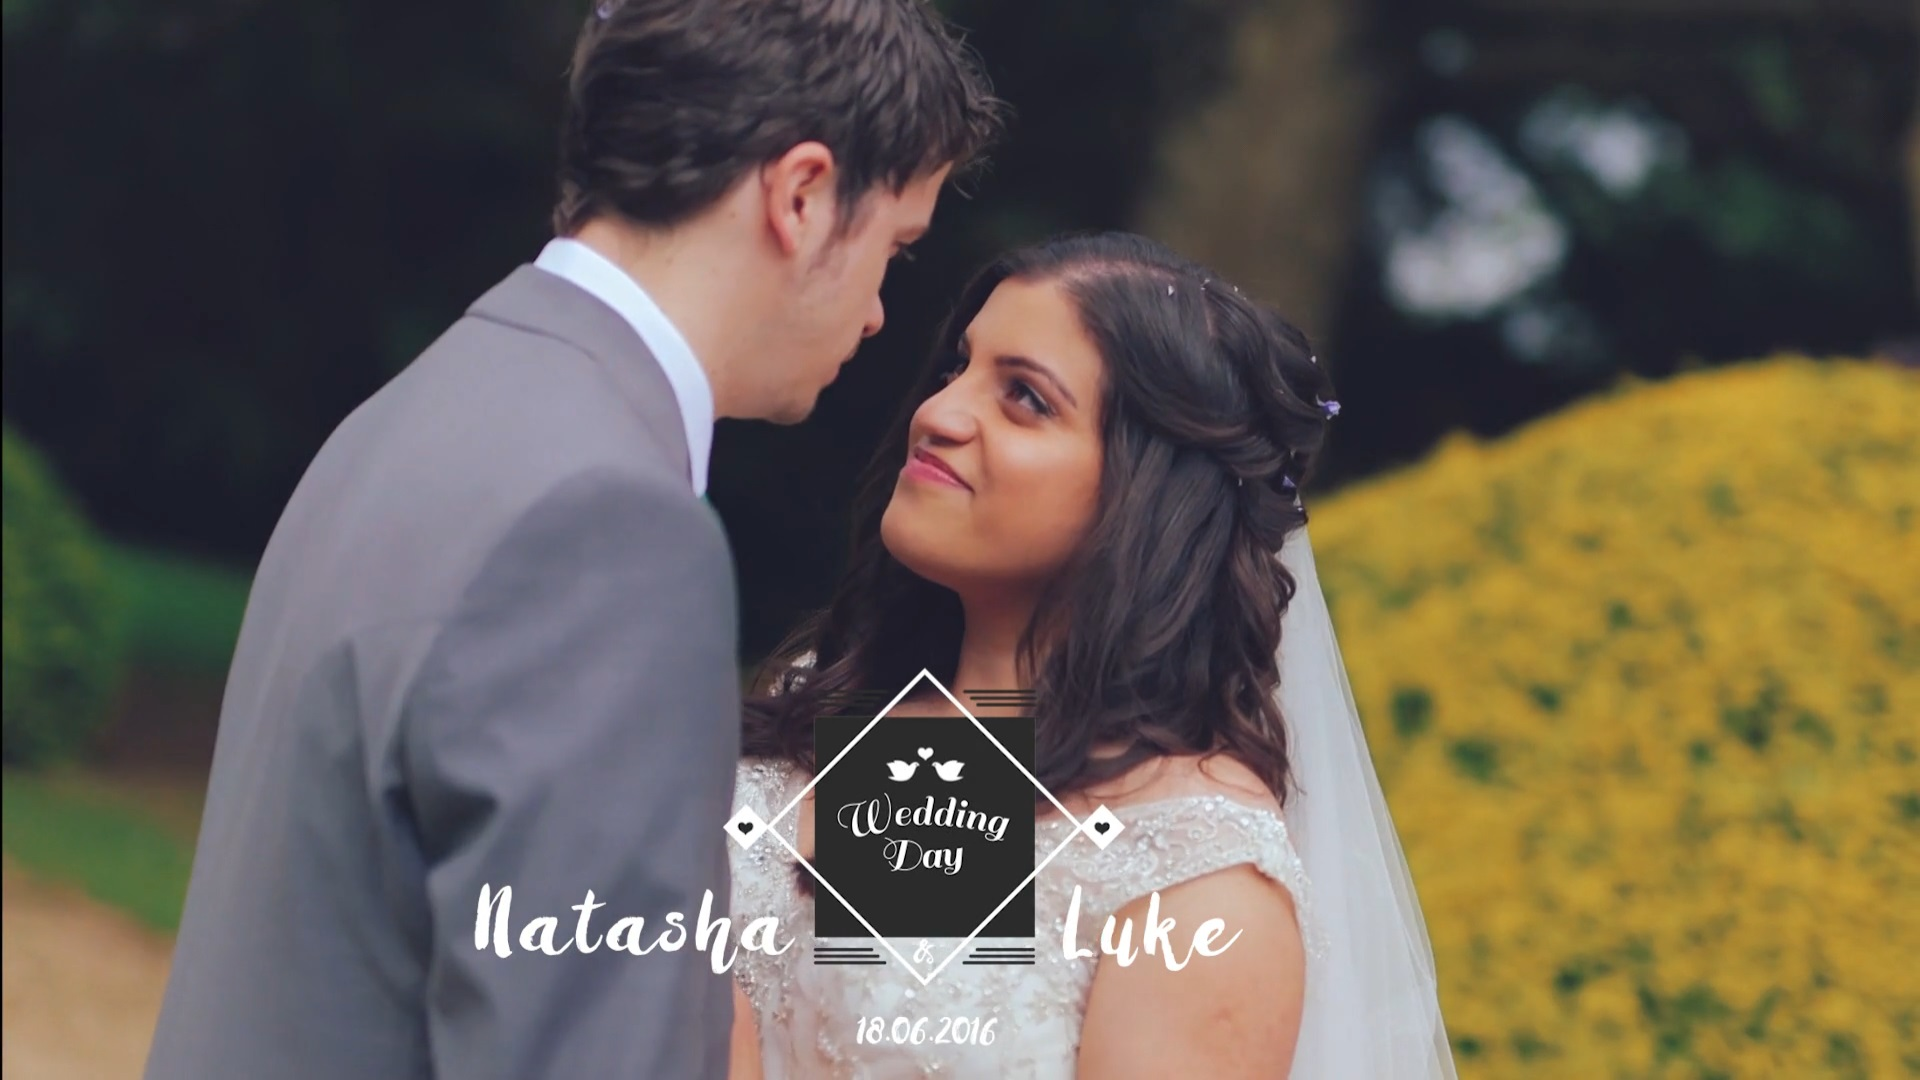 Natasha & Luke's Wedding Film